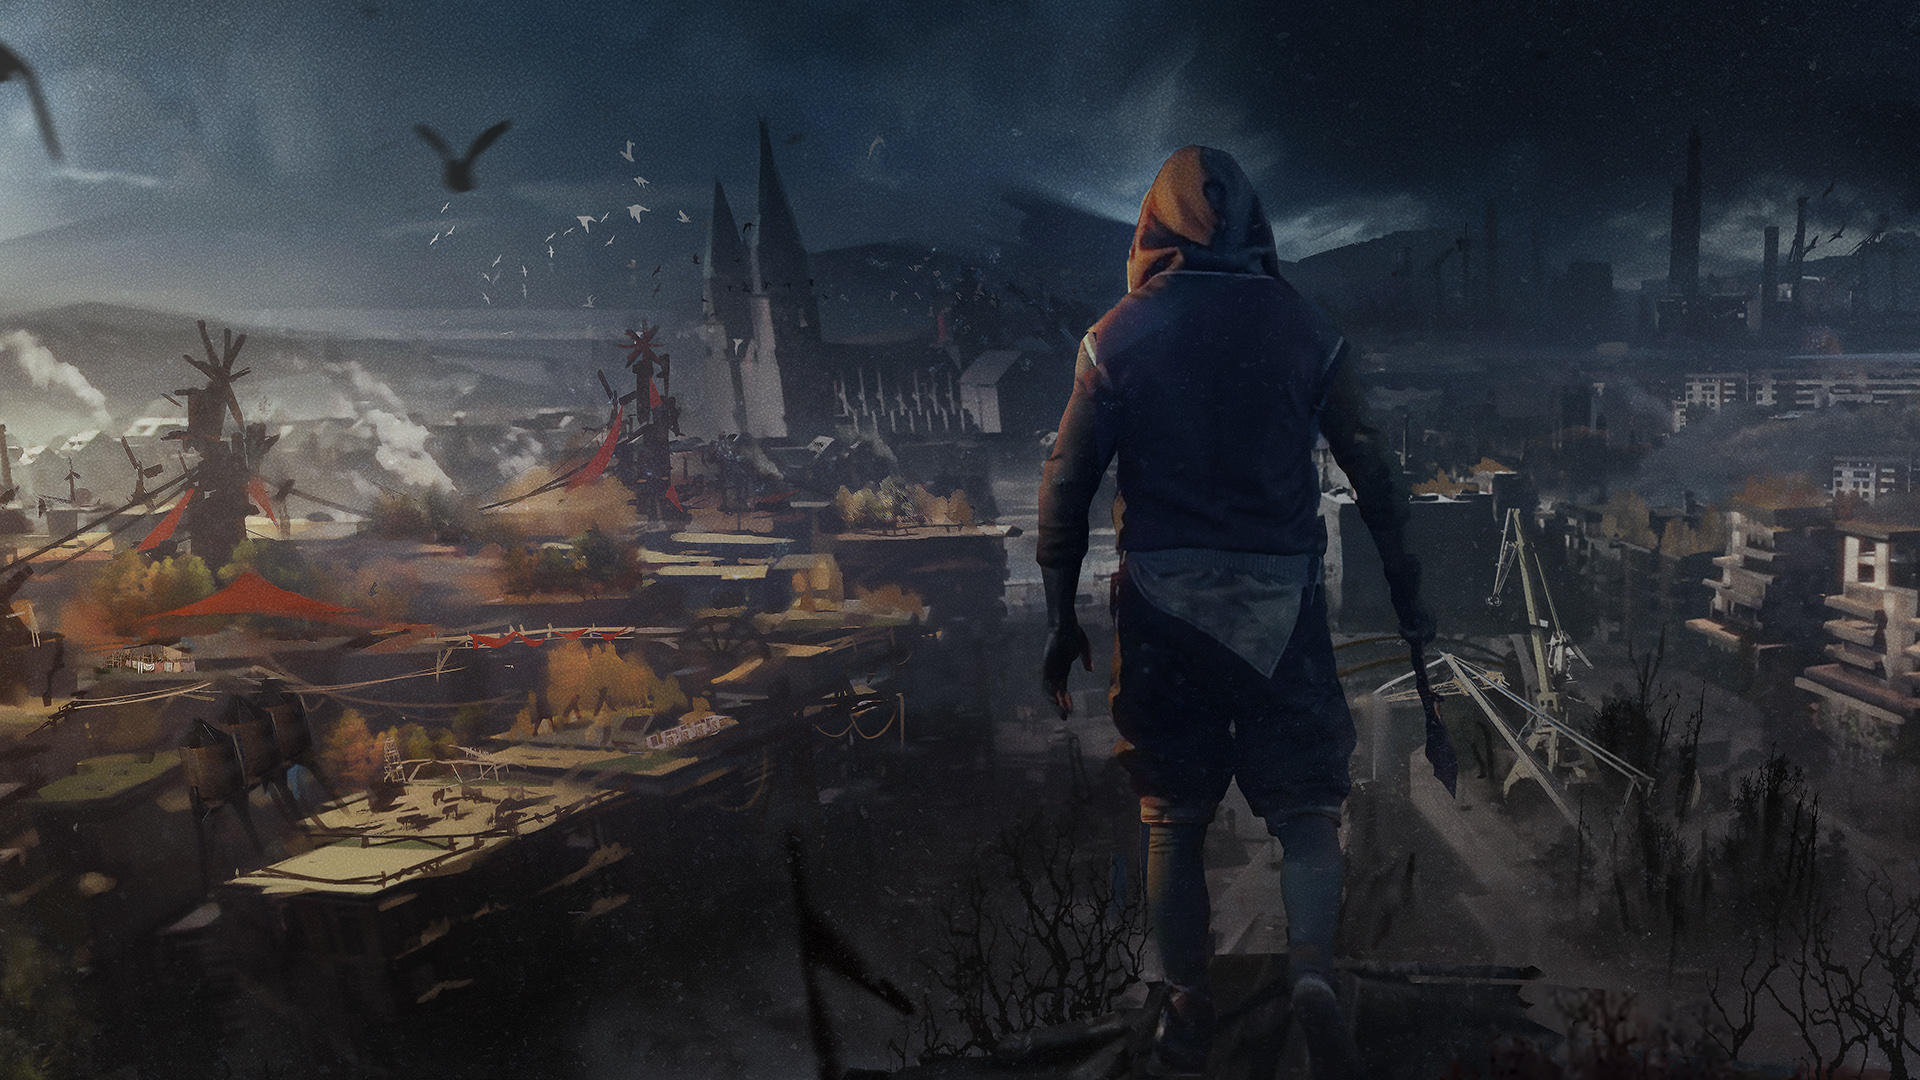 Dying Light 2's Player Choices Mean Your First Playthrough Will Reveal  Maybe Less Than Half of the Game's Content | USgamer